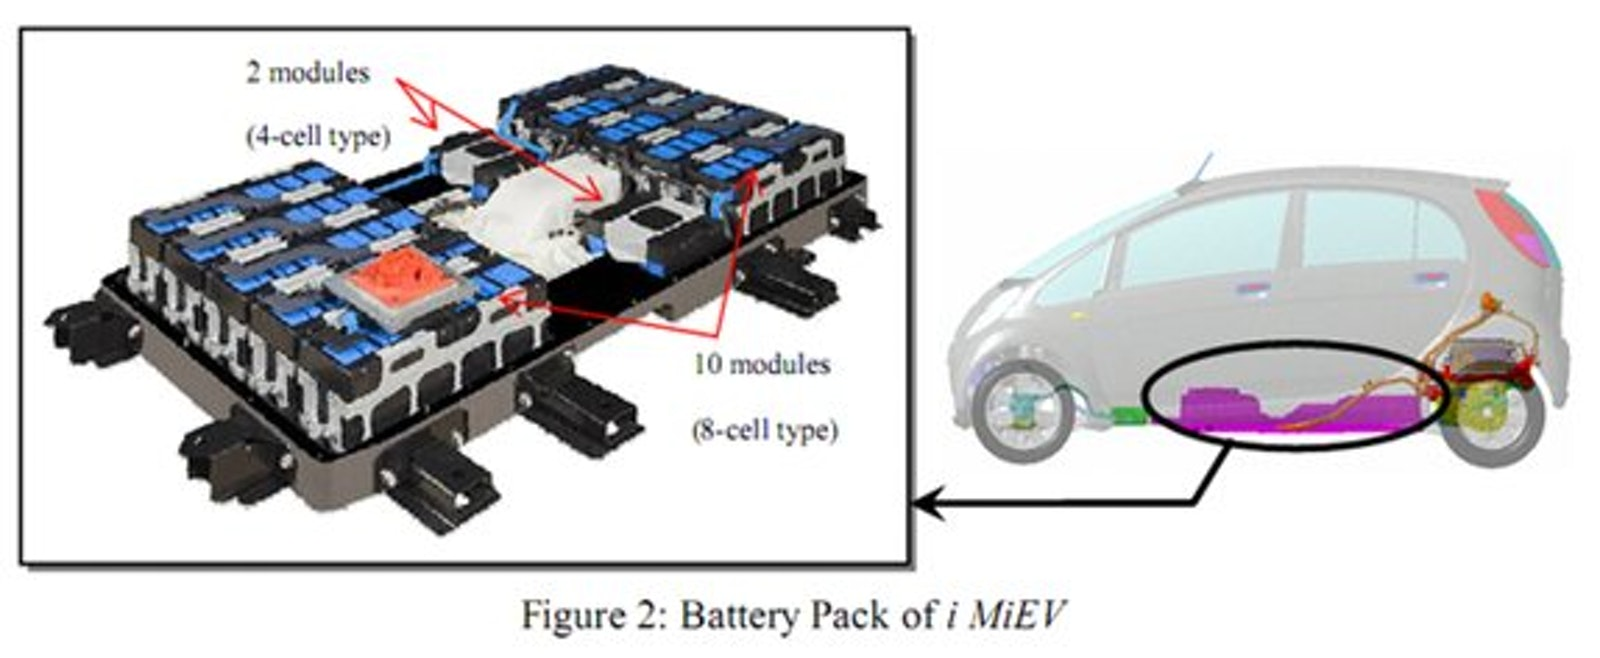 The growing EV market will fail without battery size